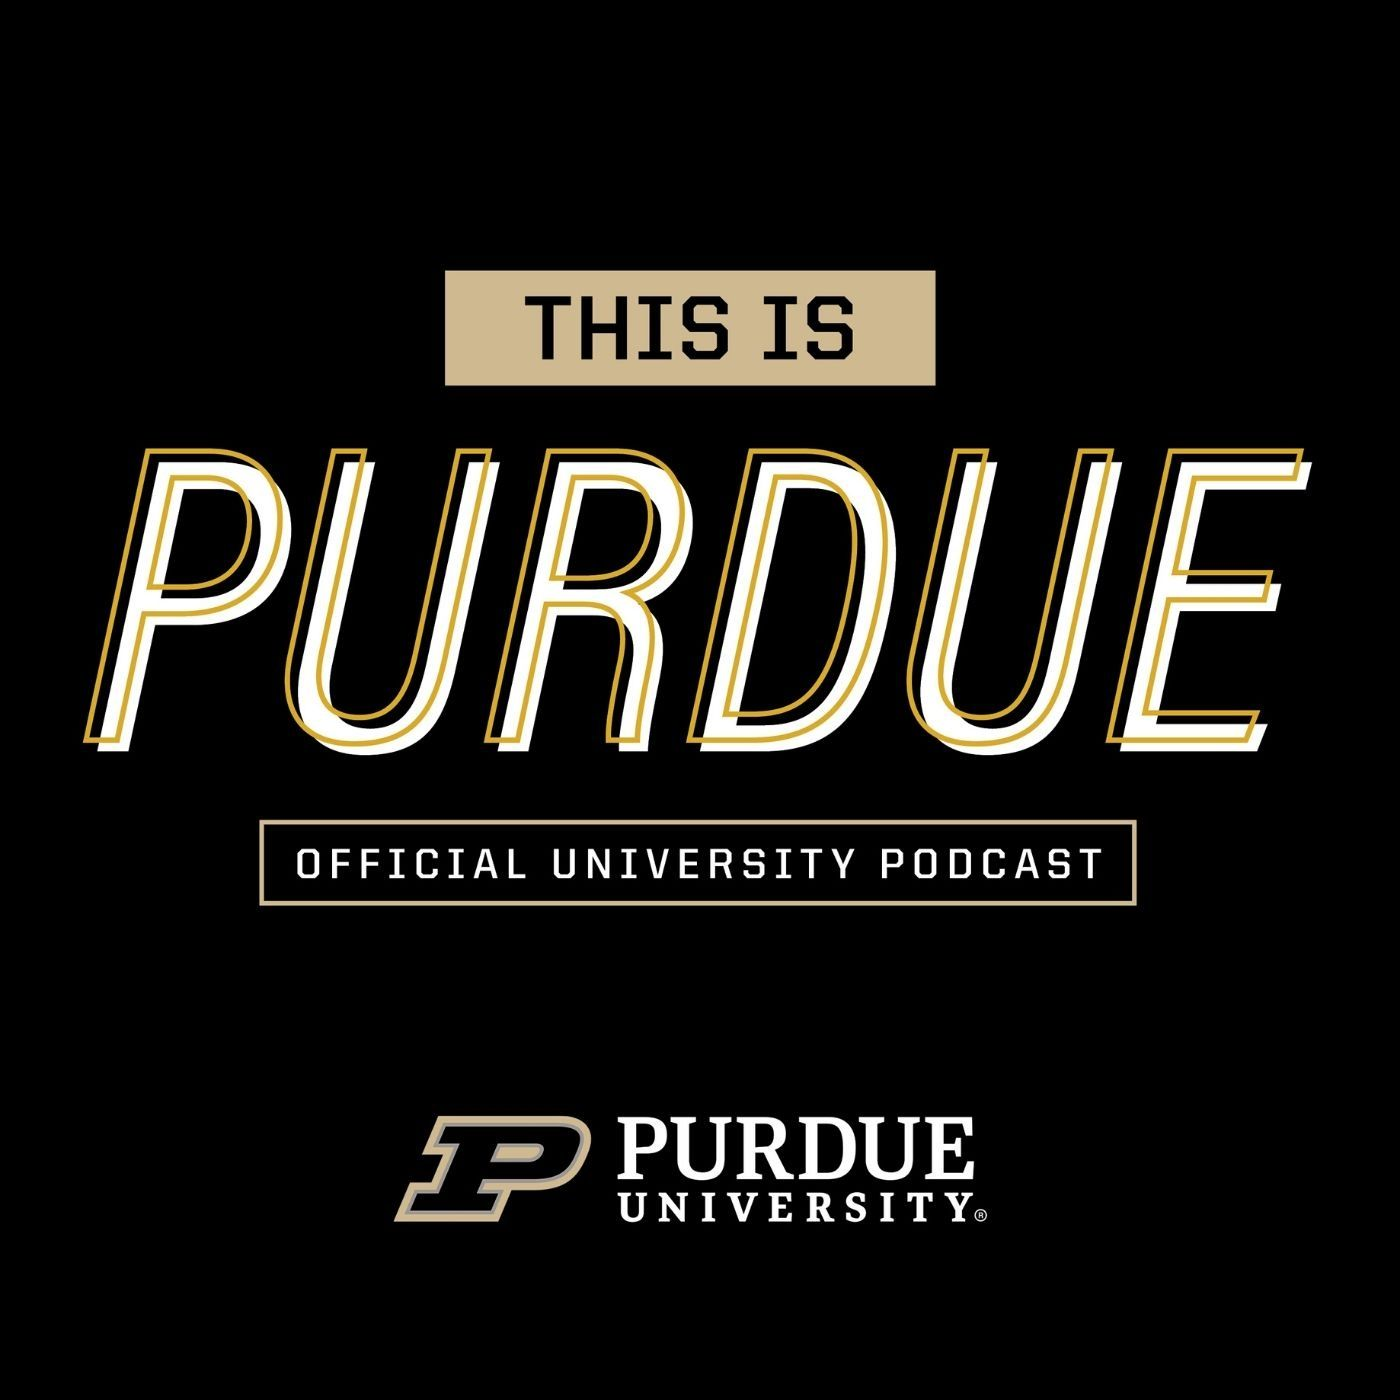 Episode 29 - Protect Purdue